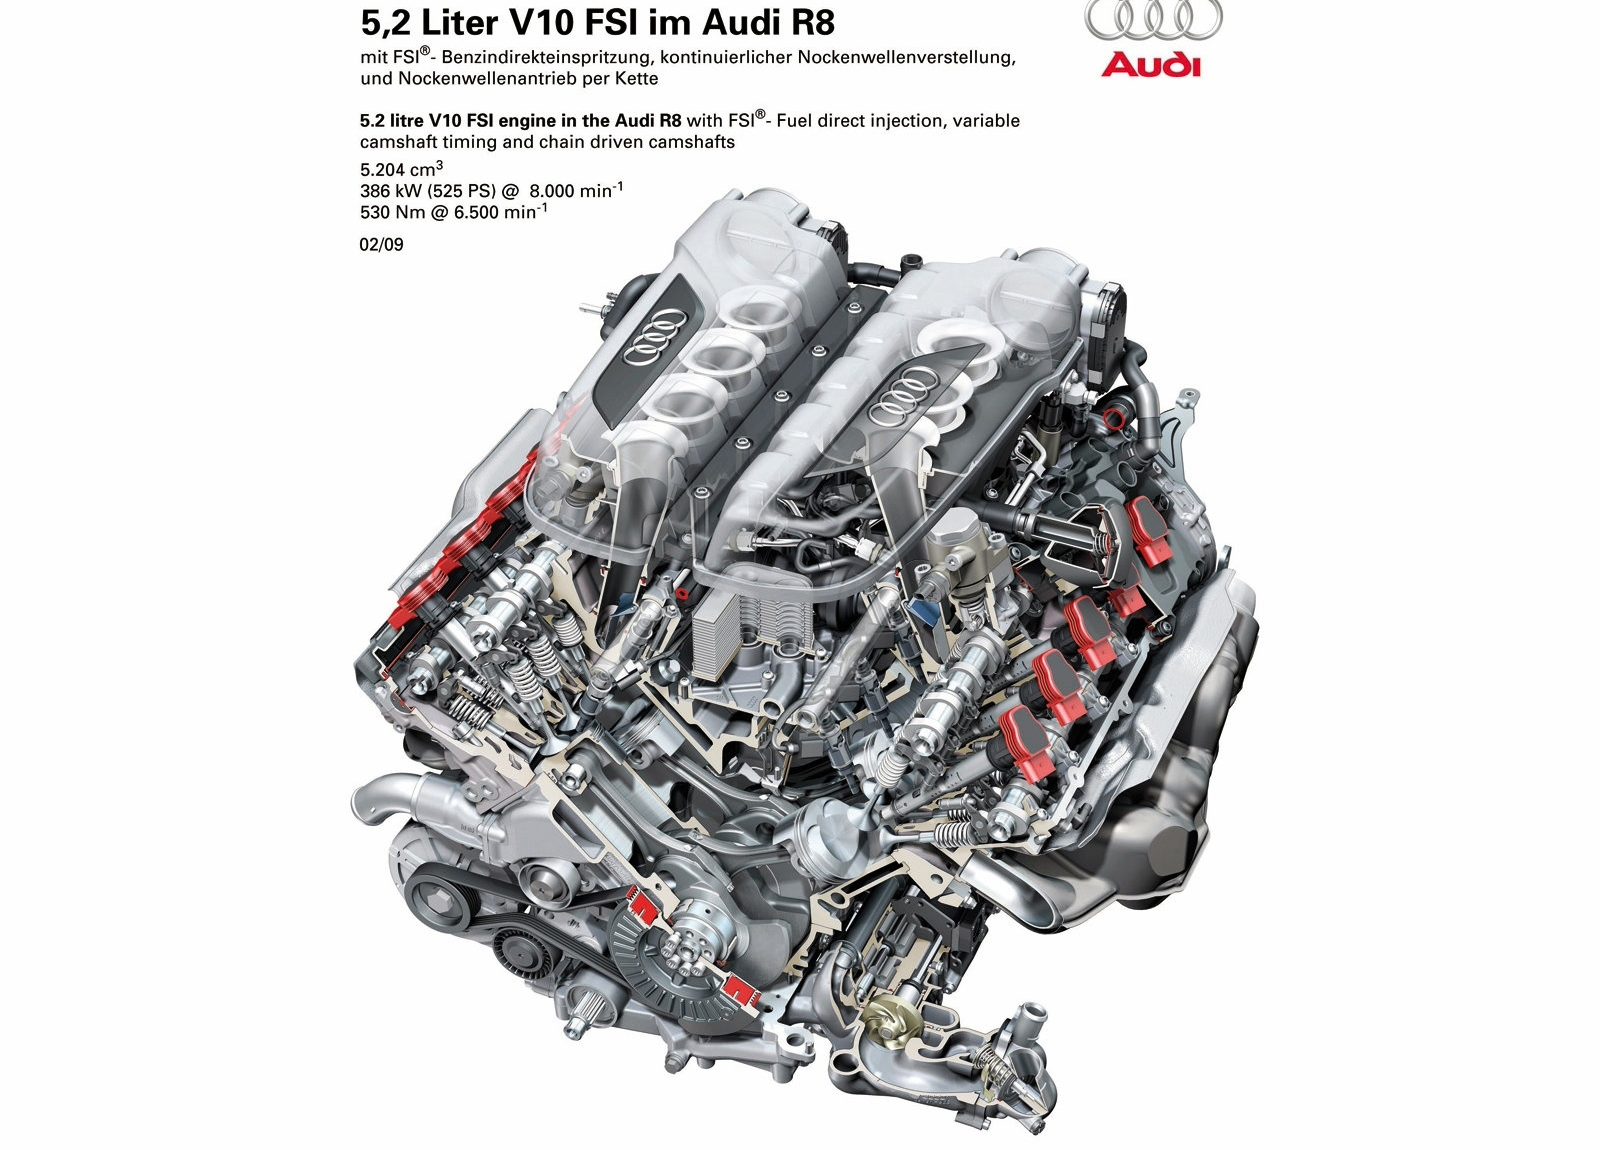 Audi R8 Engine Diagram Enthusiast Wiring Diagrams A8 V1 0 U2022 Rh Mdelibre Co 2009 A4 20t 2006